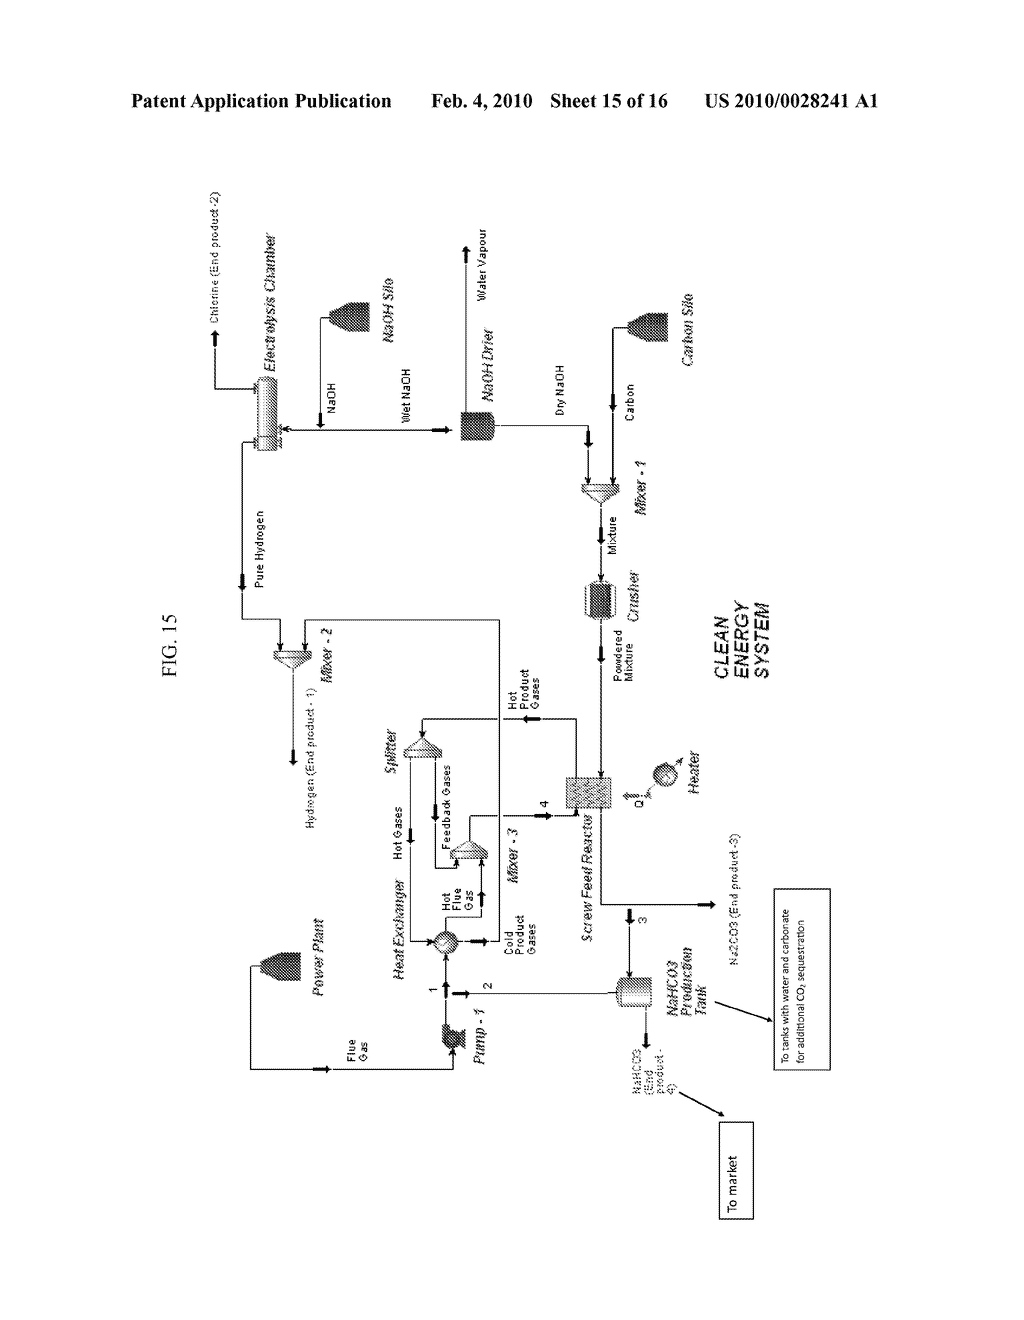 Hydrogen Production And Carbon Sequestration In Coal Natural Gas Power Plant Schematic Diagram Burning Plants Image 16